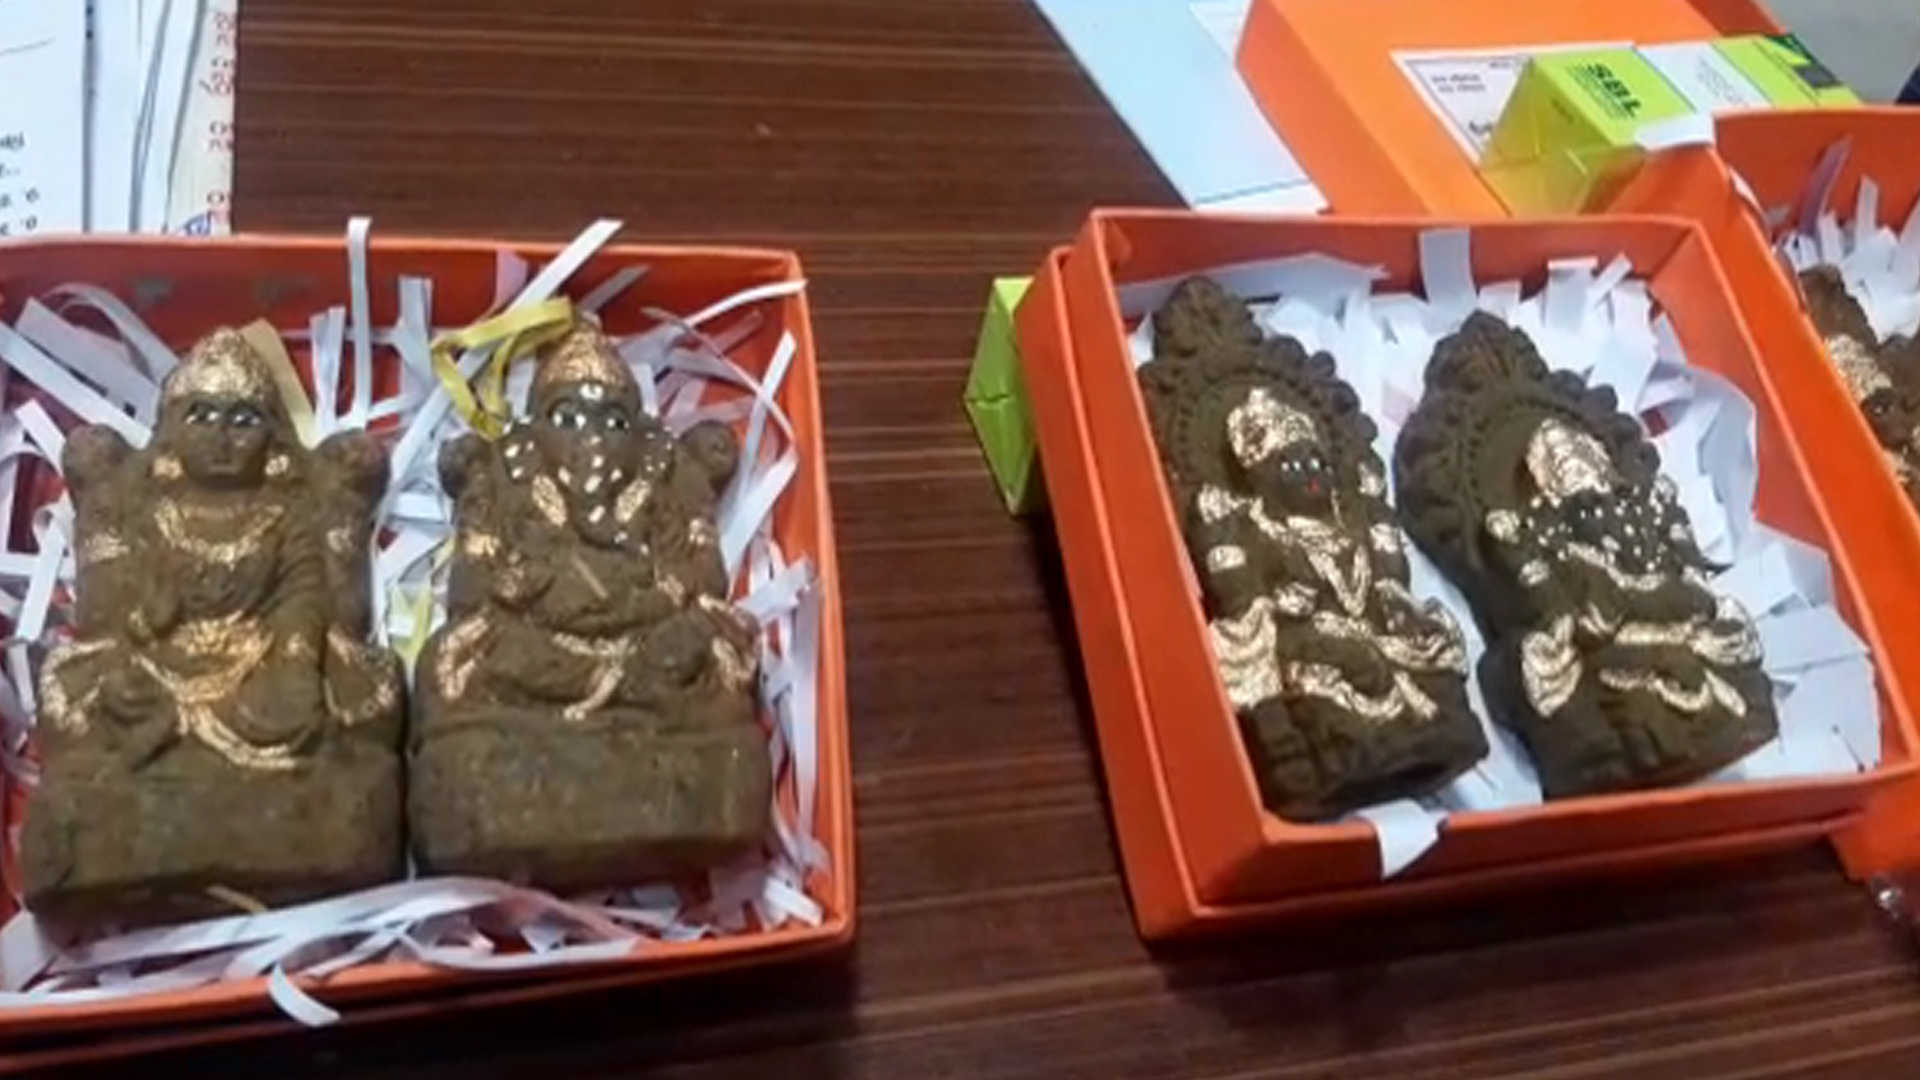 A Unique Initiative of Satyamev Jayate Trust, Ganesh Lakshmi Idols are Being Prepared with Cow Dung